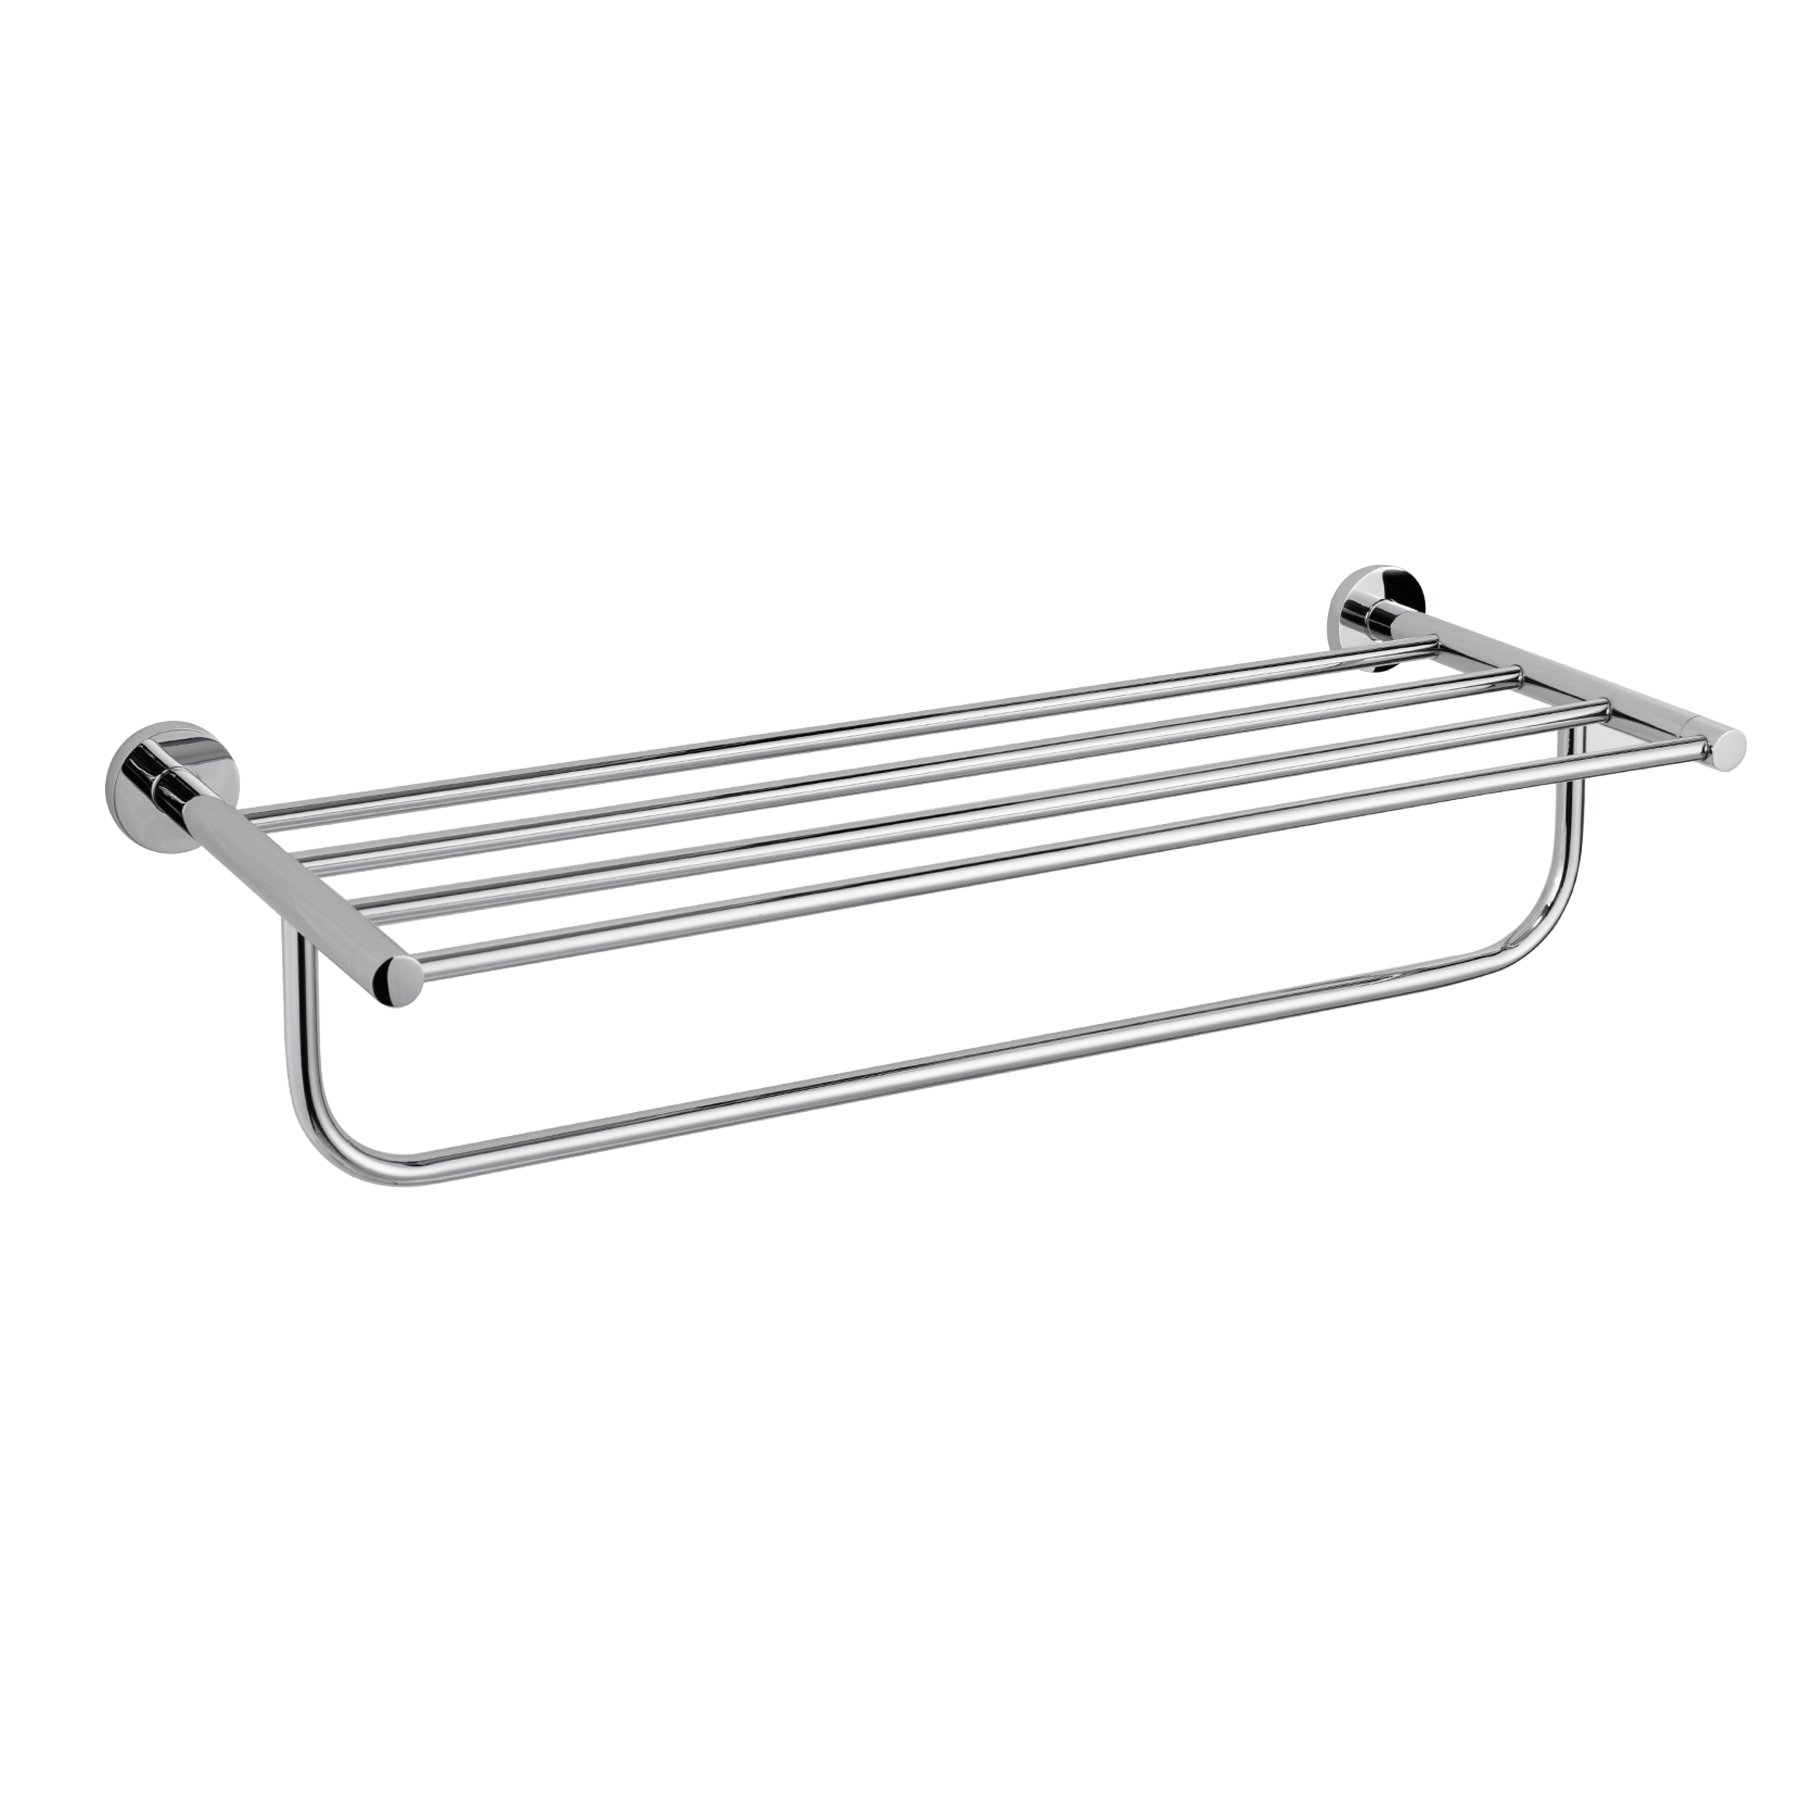 MAYKKE Nob Hill 24'' Towel Rack Shelf and Bar | Modern Wall Mount Towel and Accessories Holder for Bathroom, Shower, Kitchen | Polished Chrome, AHA1000901